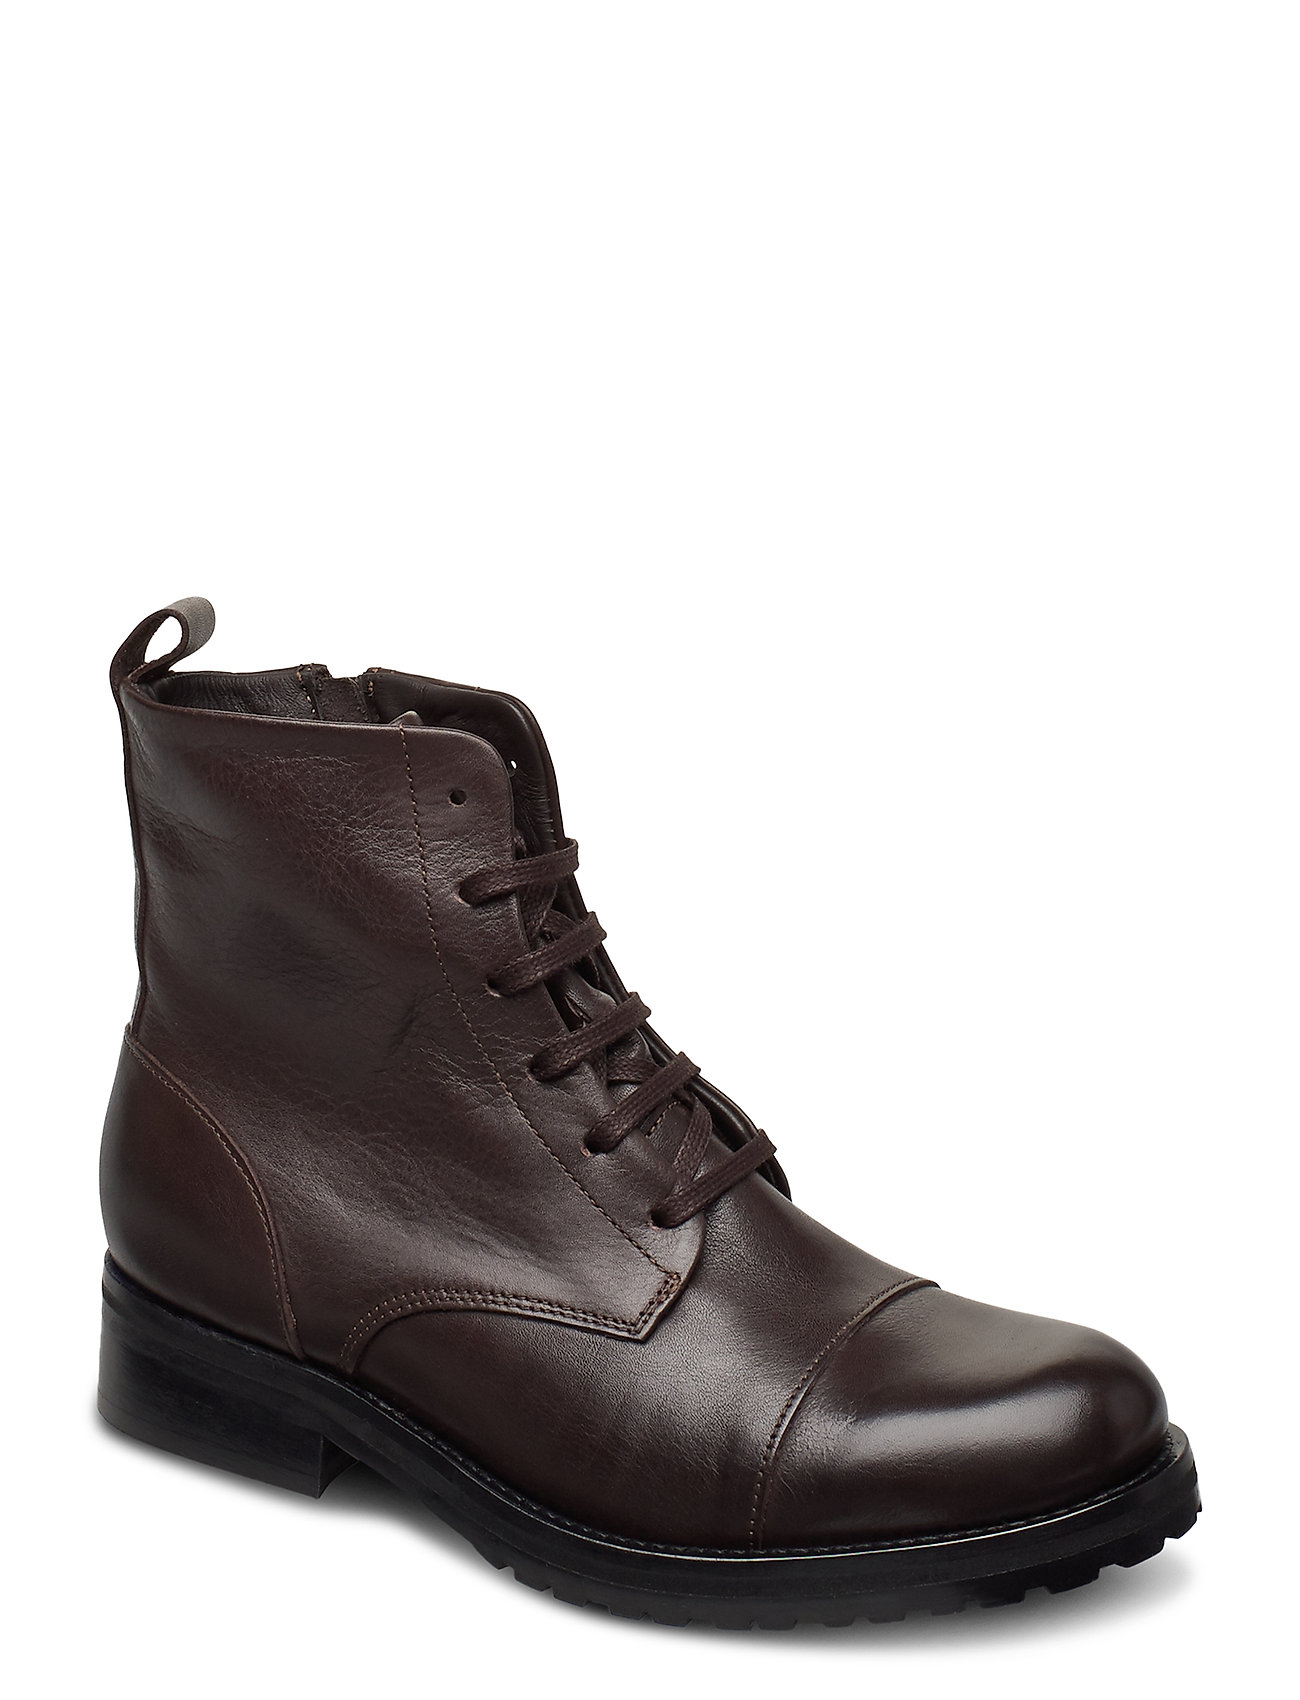 Image of Ave Lace Up Boot - Black Shoes Boots Ankle Boots Ankle Boot - Flat Brun Royal RepubliQ (3429250225)